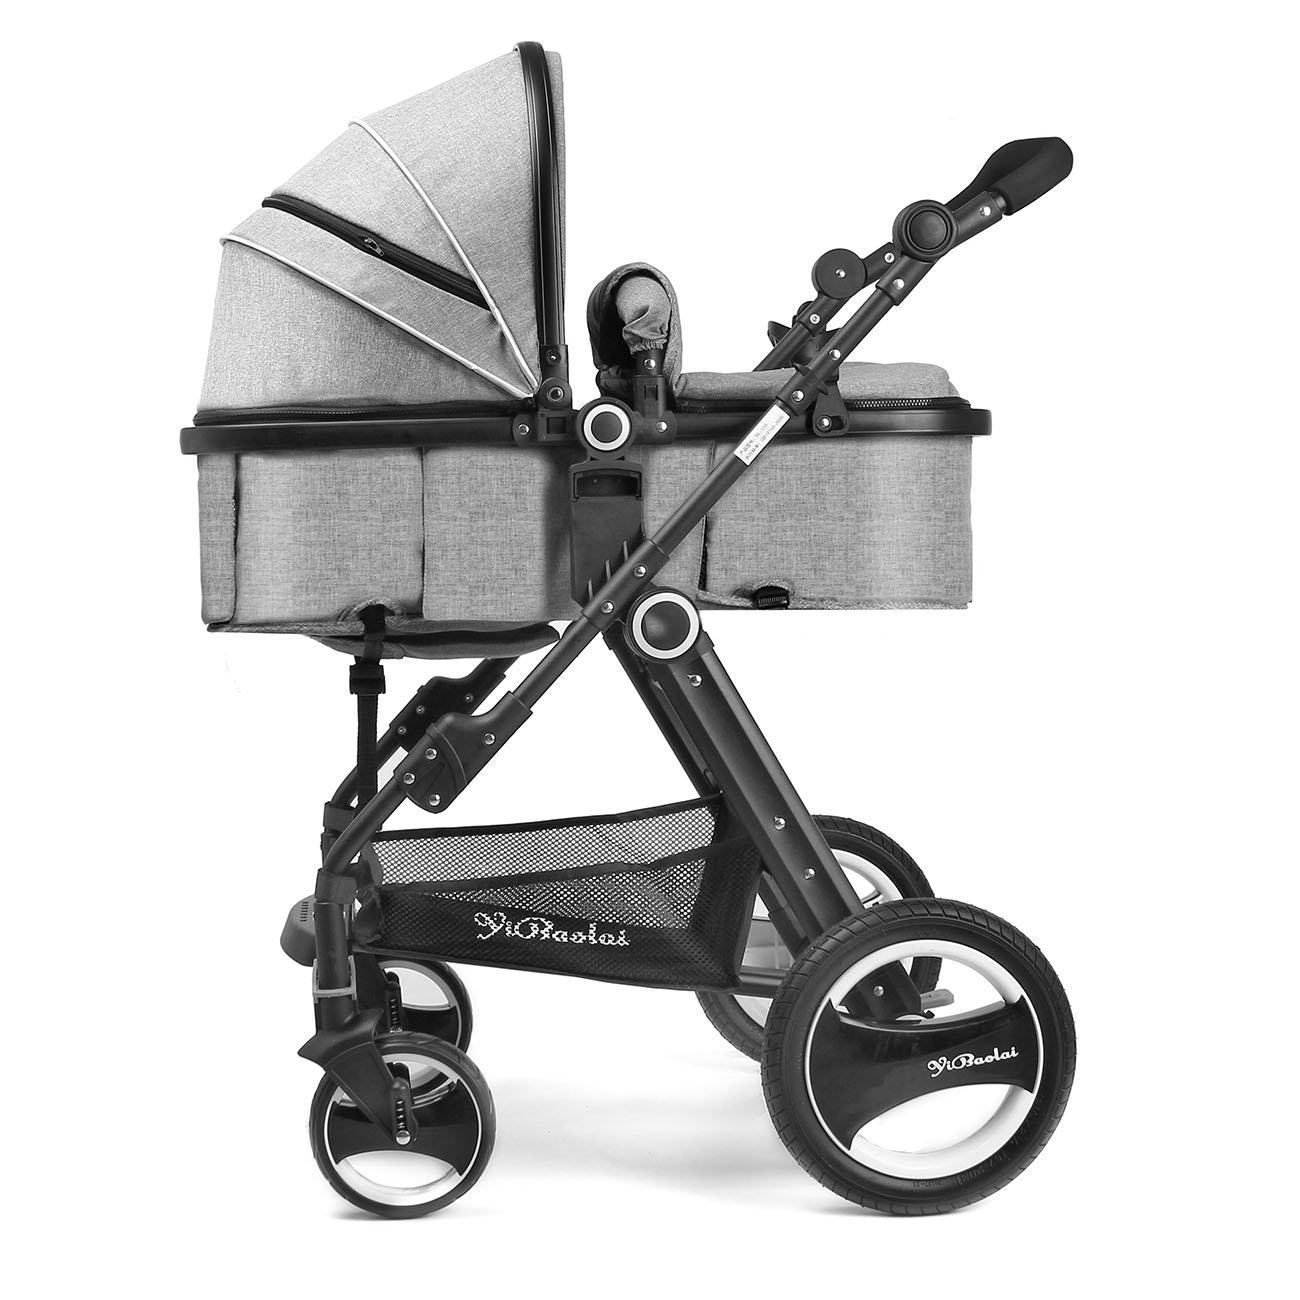 YBL Newborn Baby Stroller Urban Umbrella for Doll with Basket Cup Holder Canopy Lightweight Storage for Toddler Recline Cheap